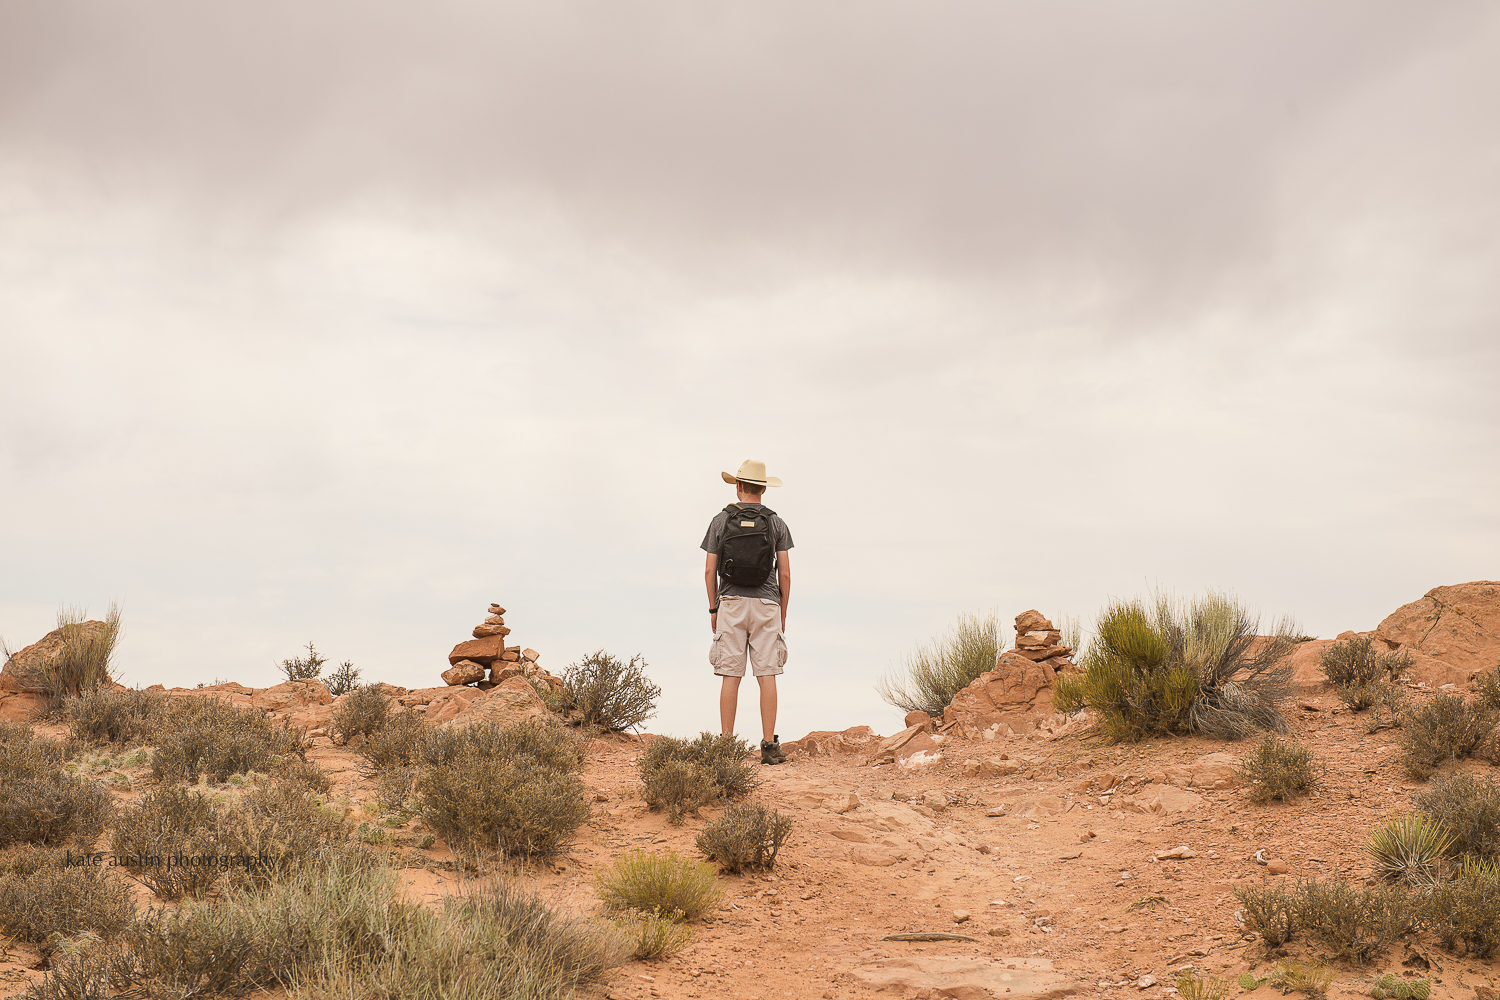 20160802-day37_murphytrail-canyonlands_moab201620160802-8.jpg